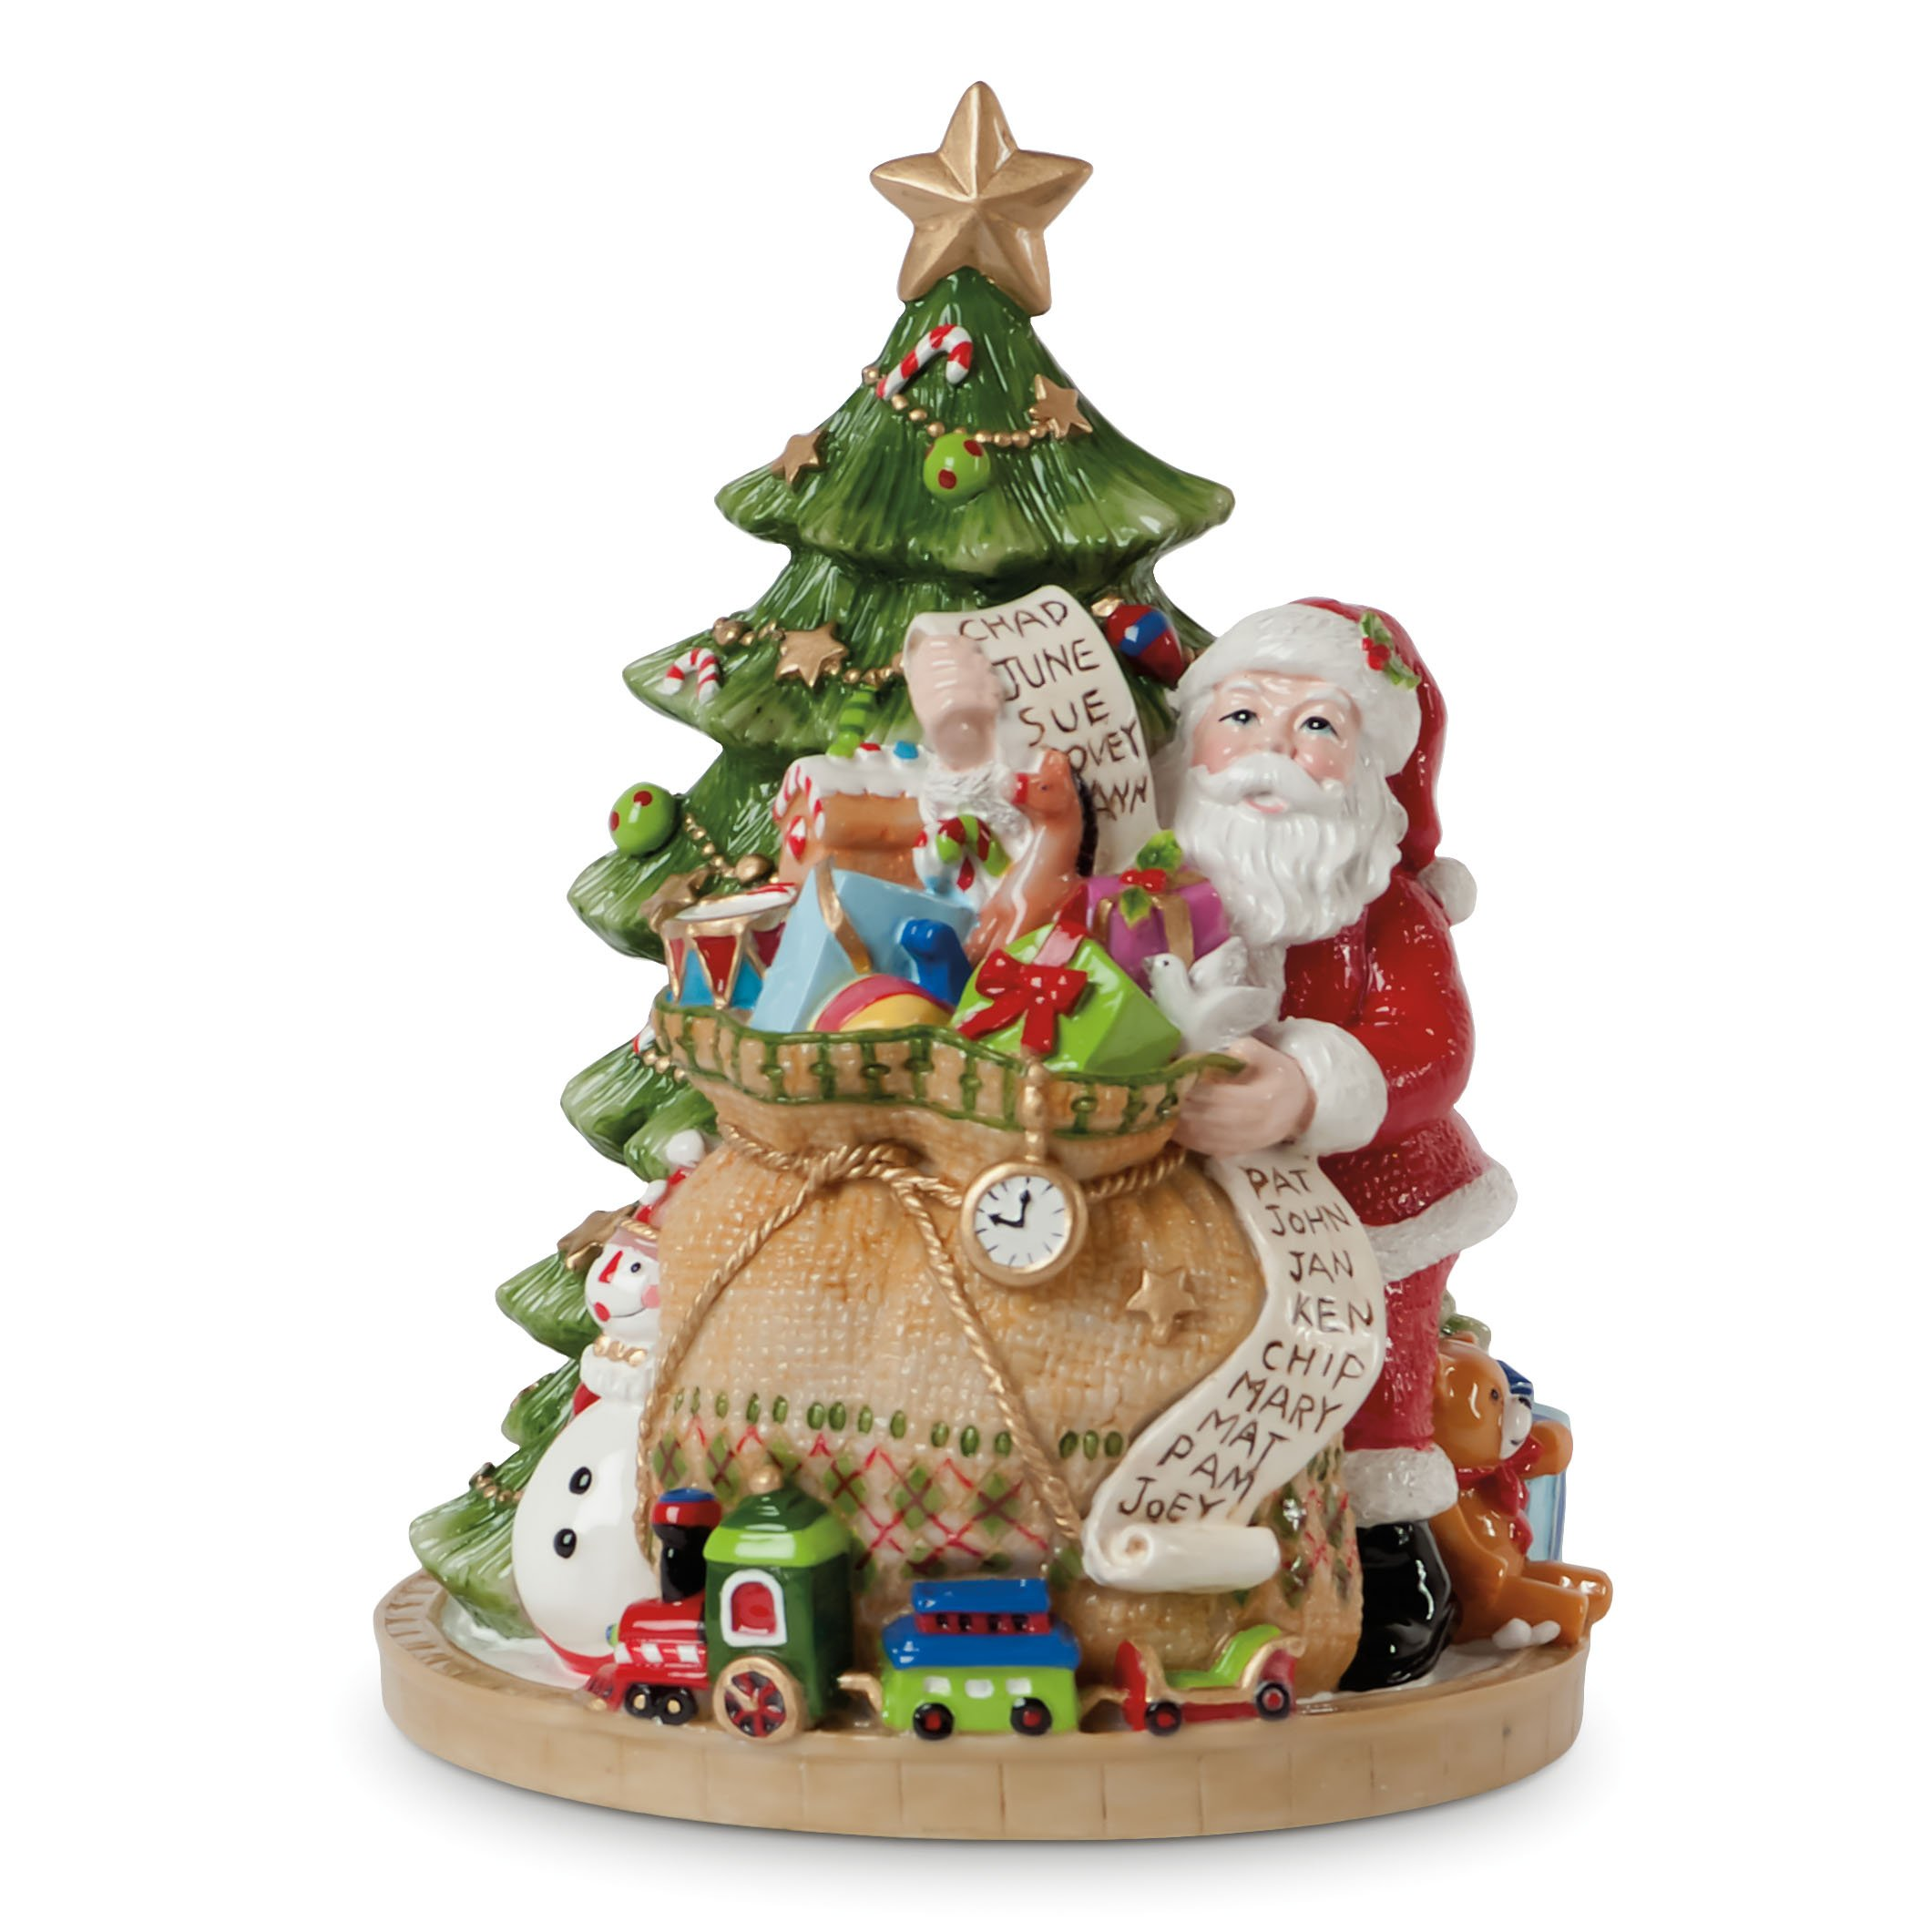 Fitz and Floyd Gifts from Santa Collection, We Wish You A Merry Christmas' Musical Figurine